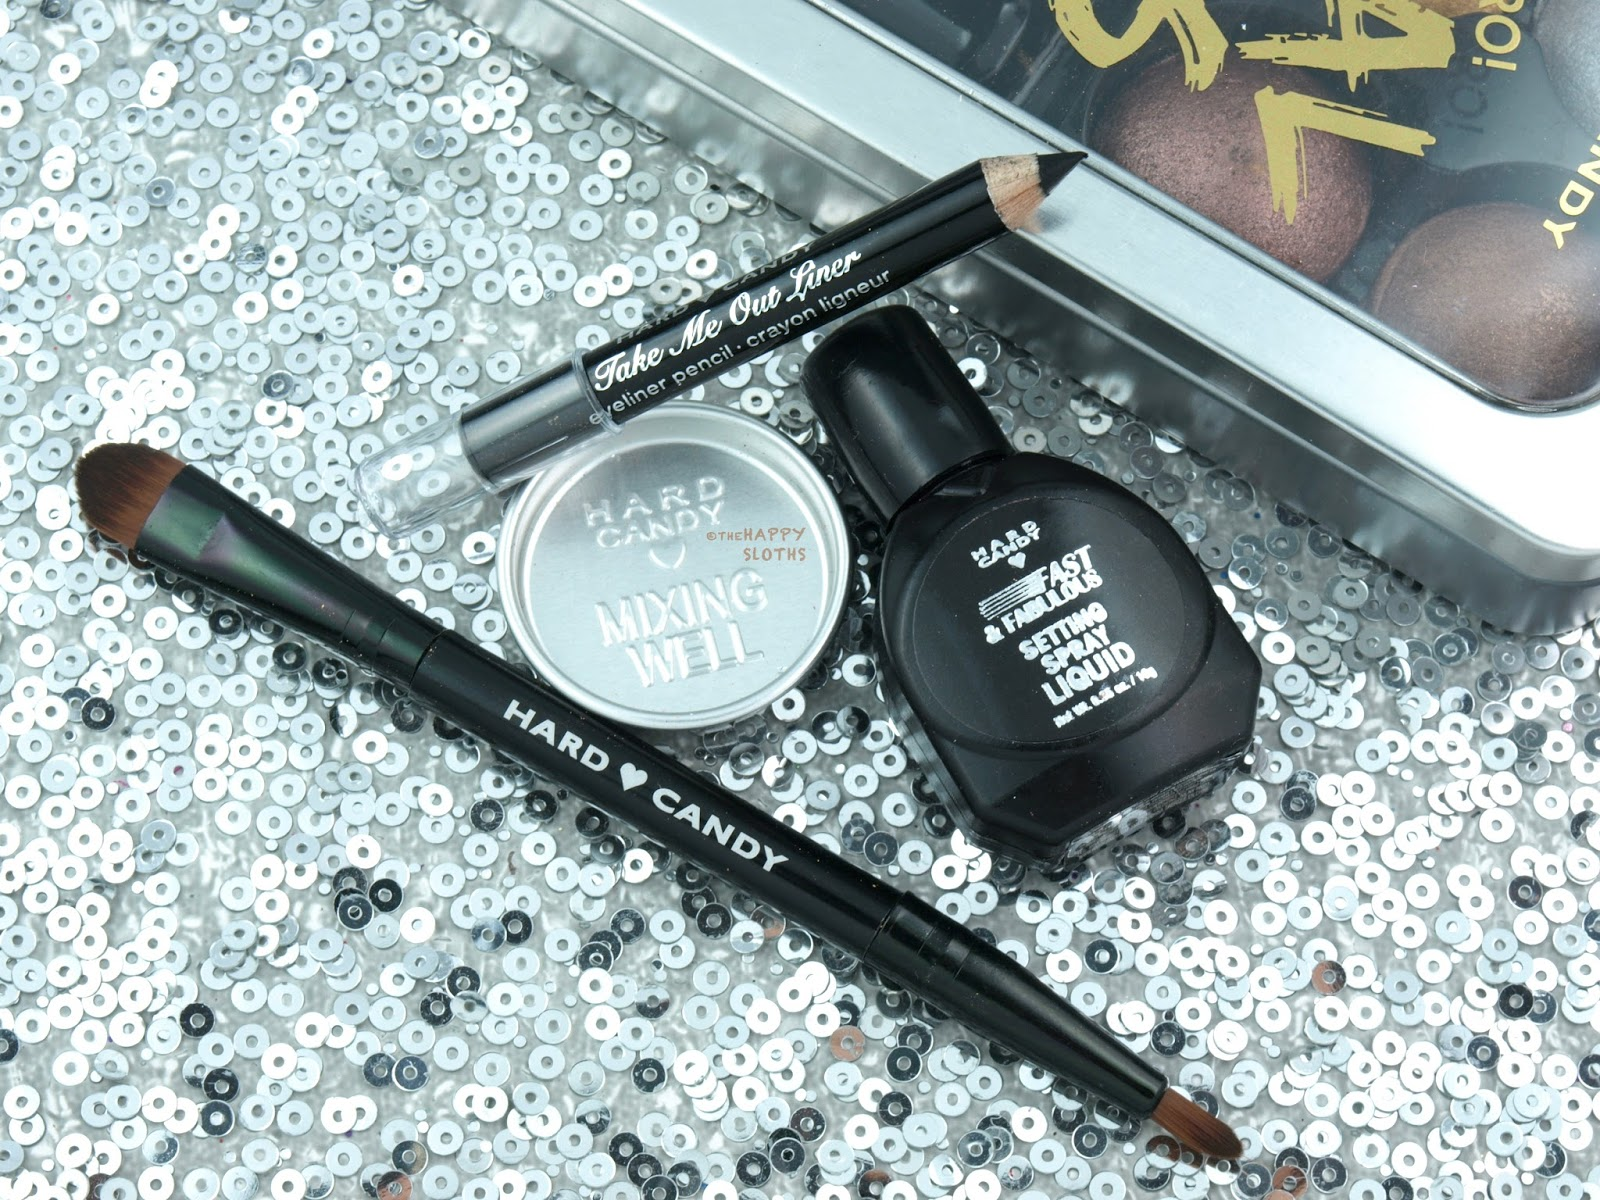 Hard Candy Look Pro! Metal Eyes Kit: Review and Swatches